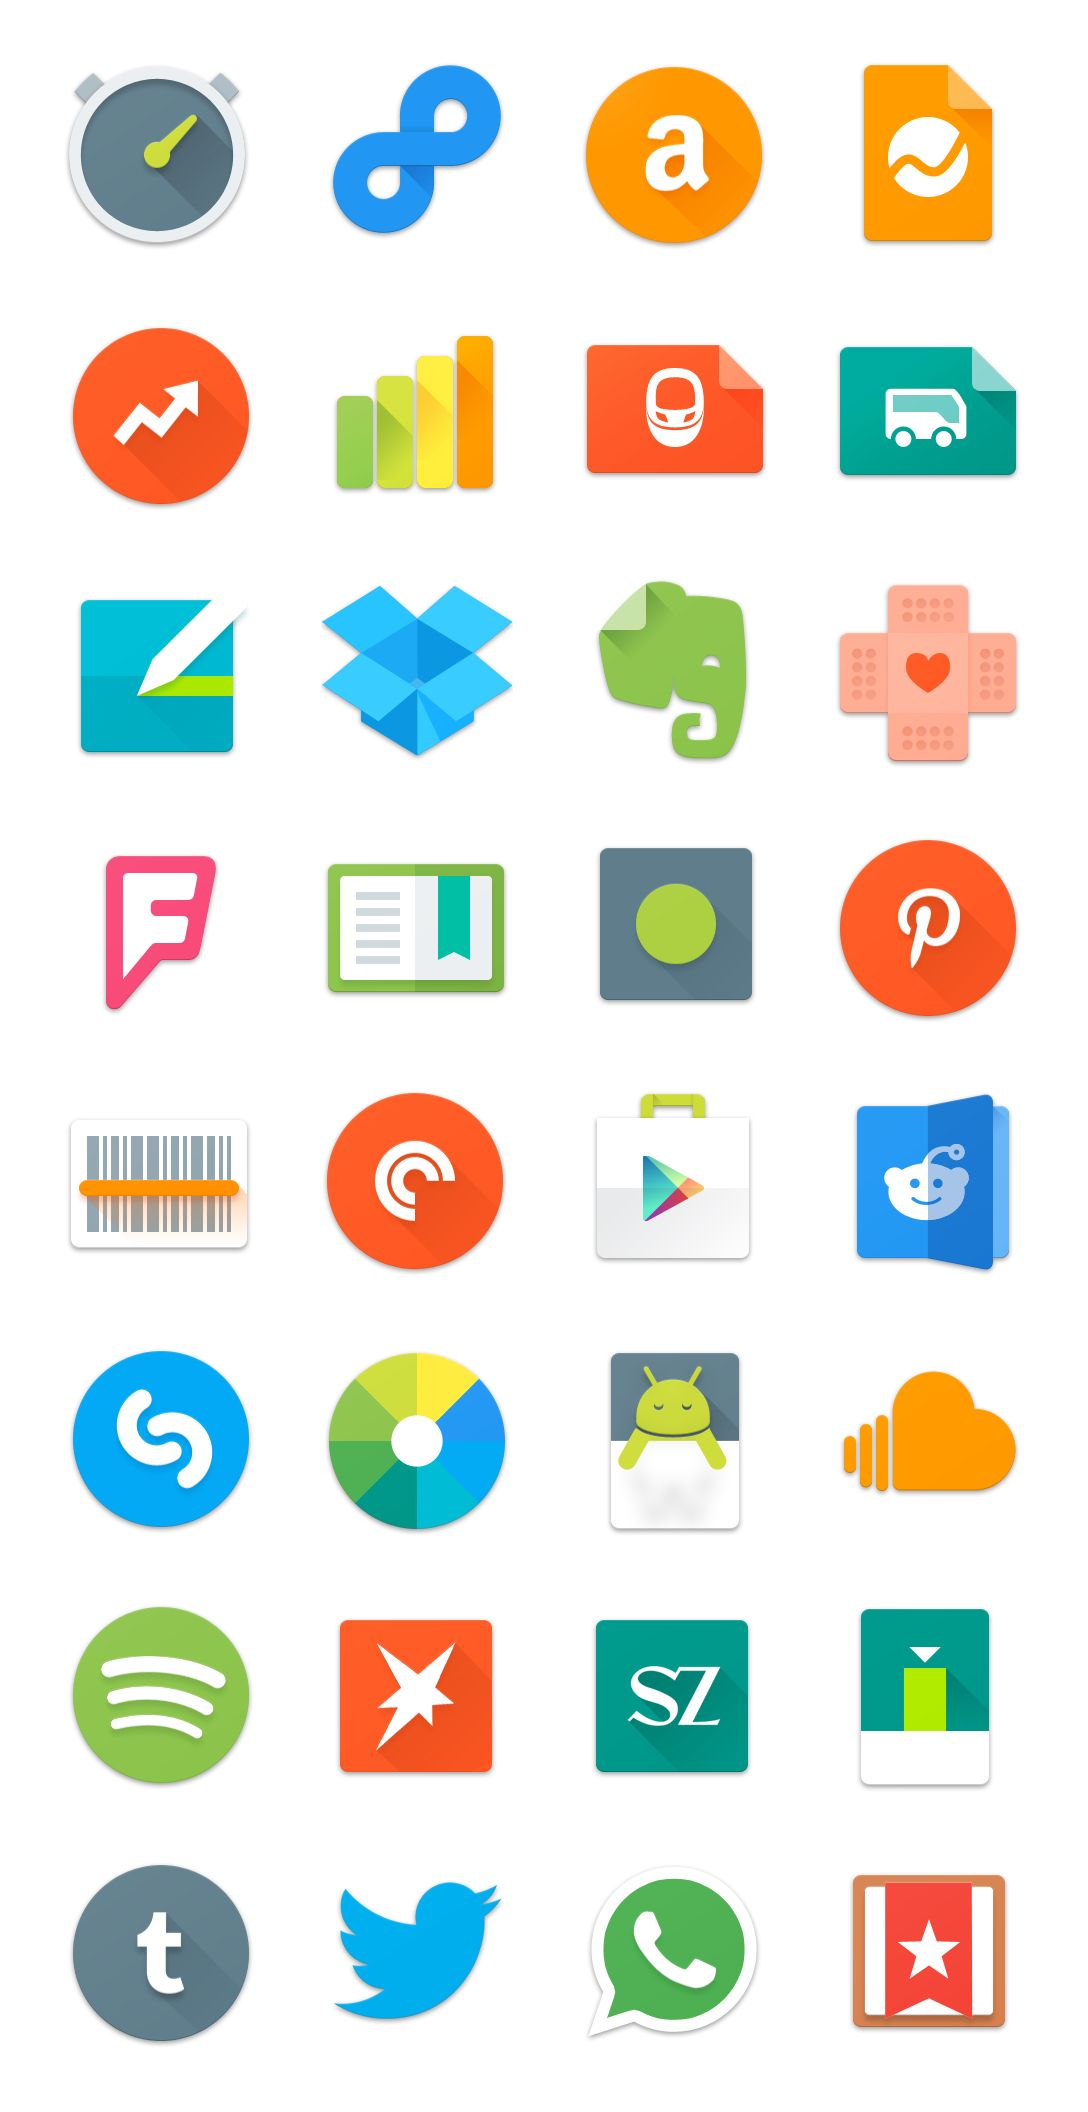 Android Lollipop Icon Set by TinyLab on DeviantArt